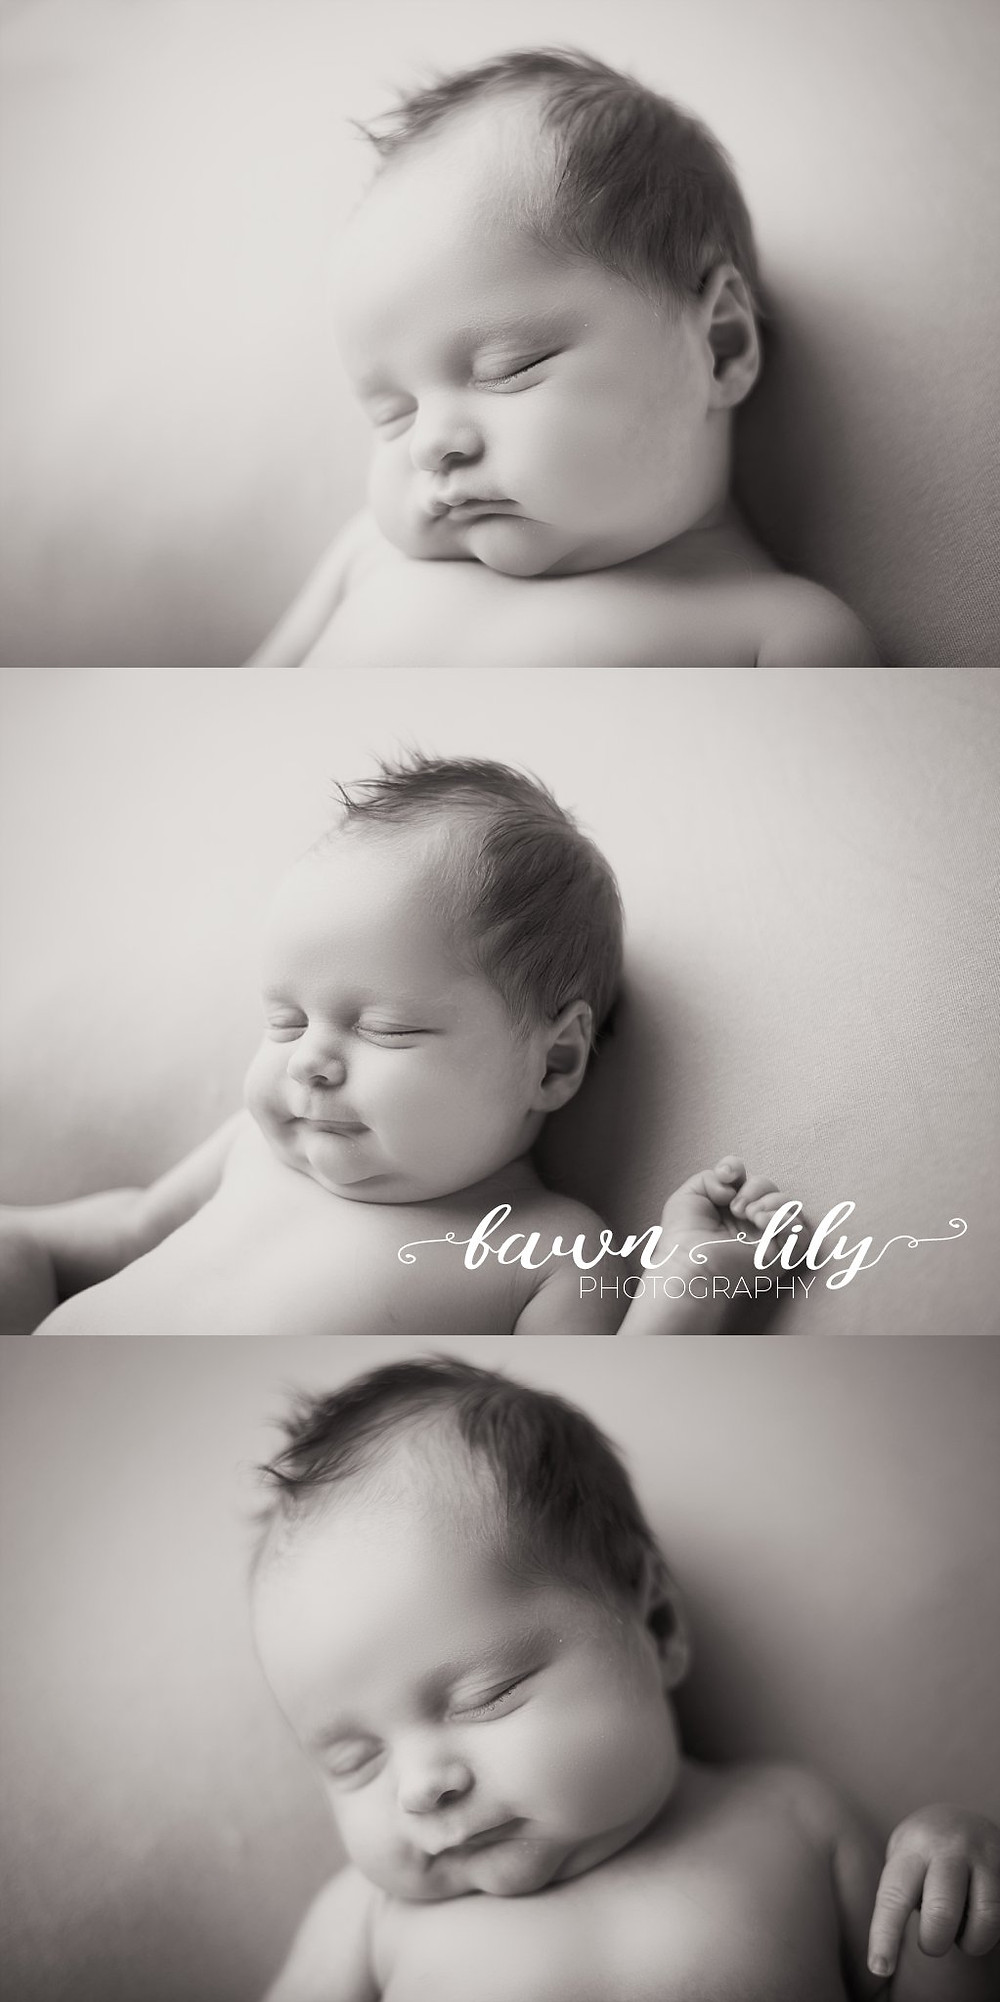 Relaxed Posing for Studio Newborn Photography - Sidney BC Newborn Photographer - Fawn Lily Photography - What kind of newborn session is right for you?